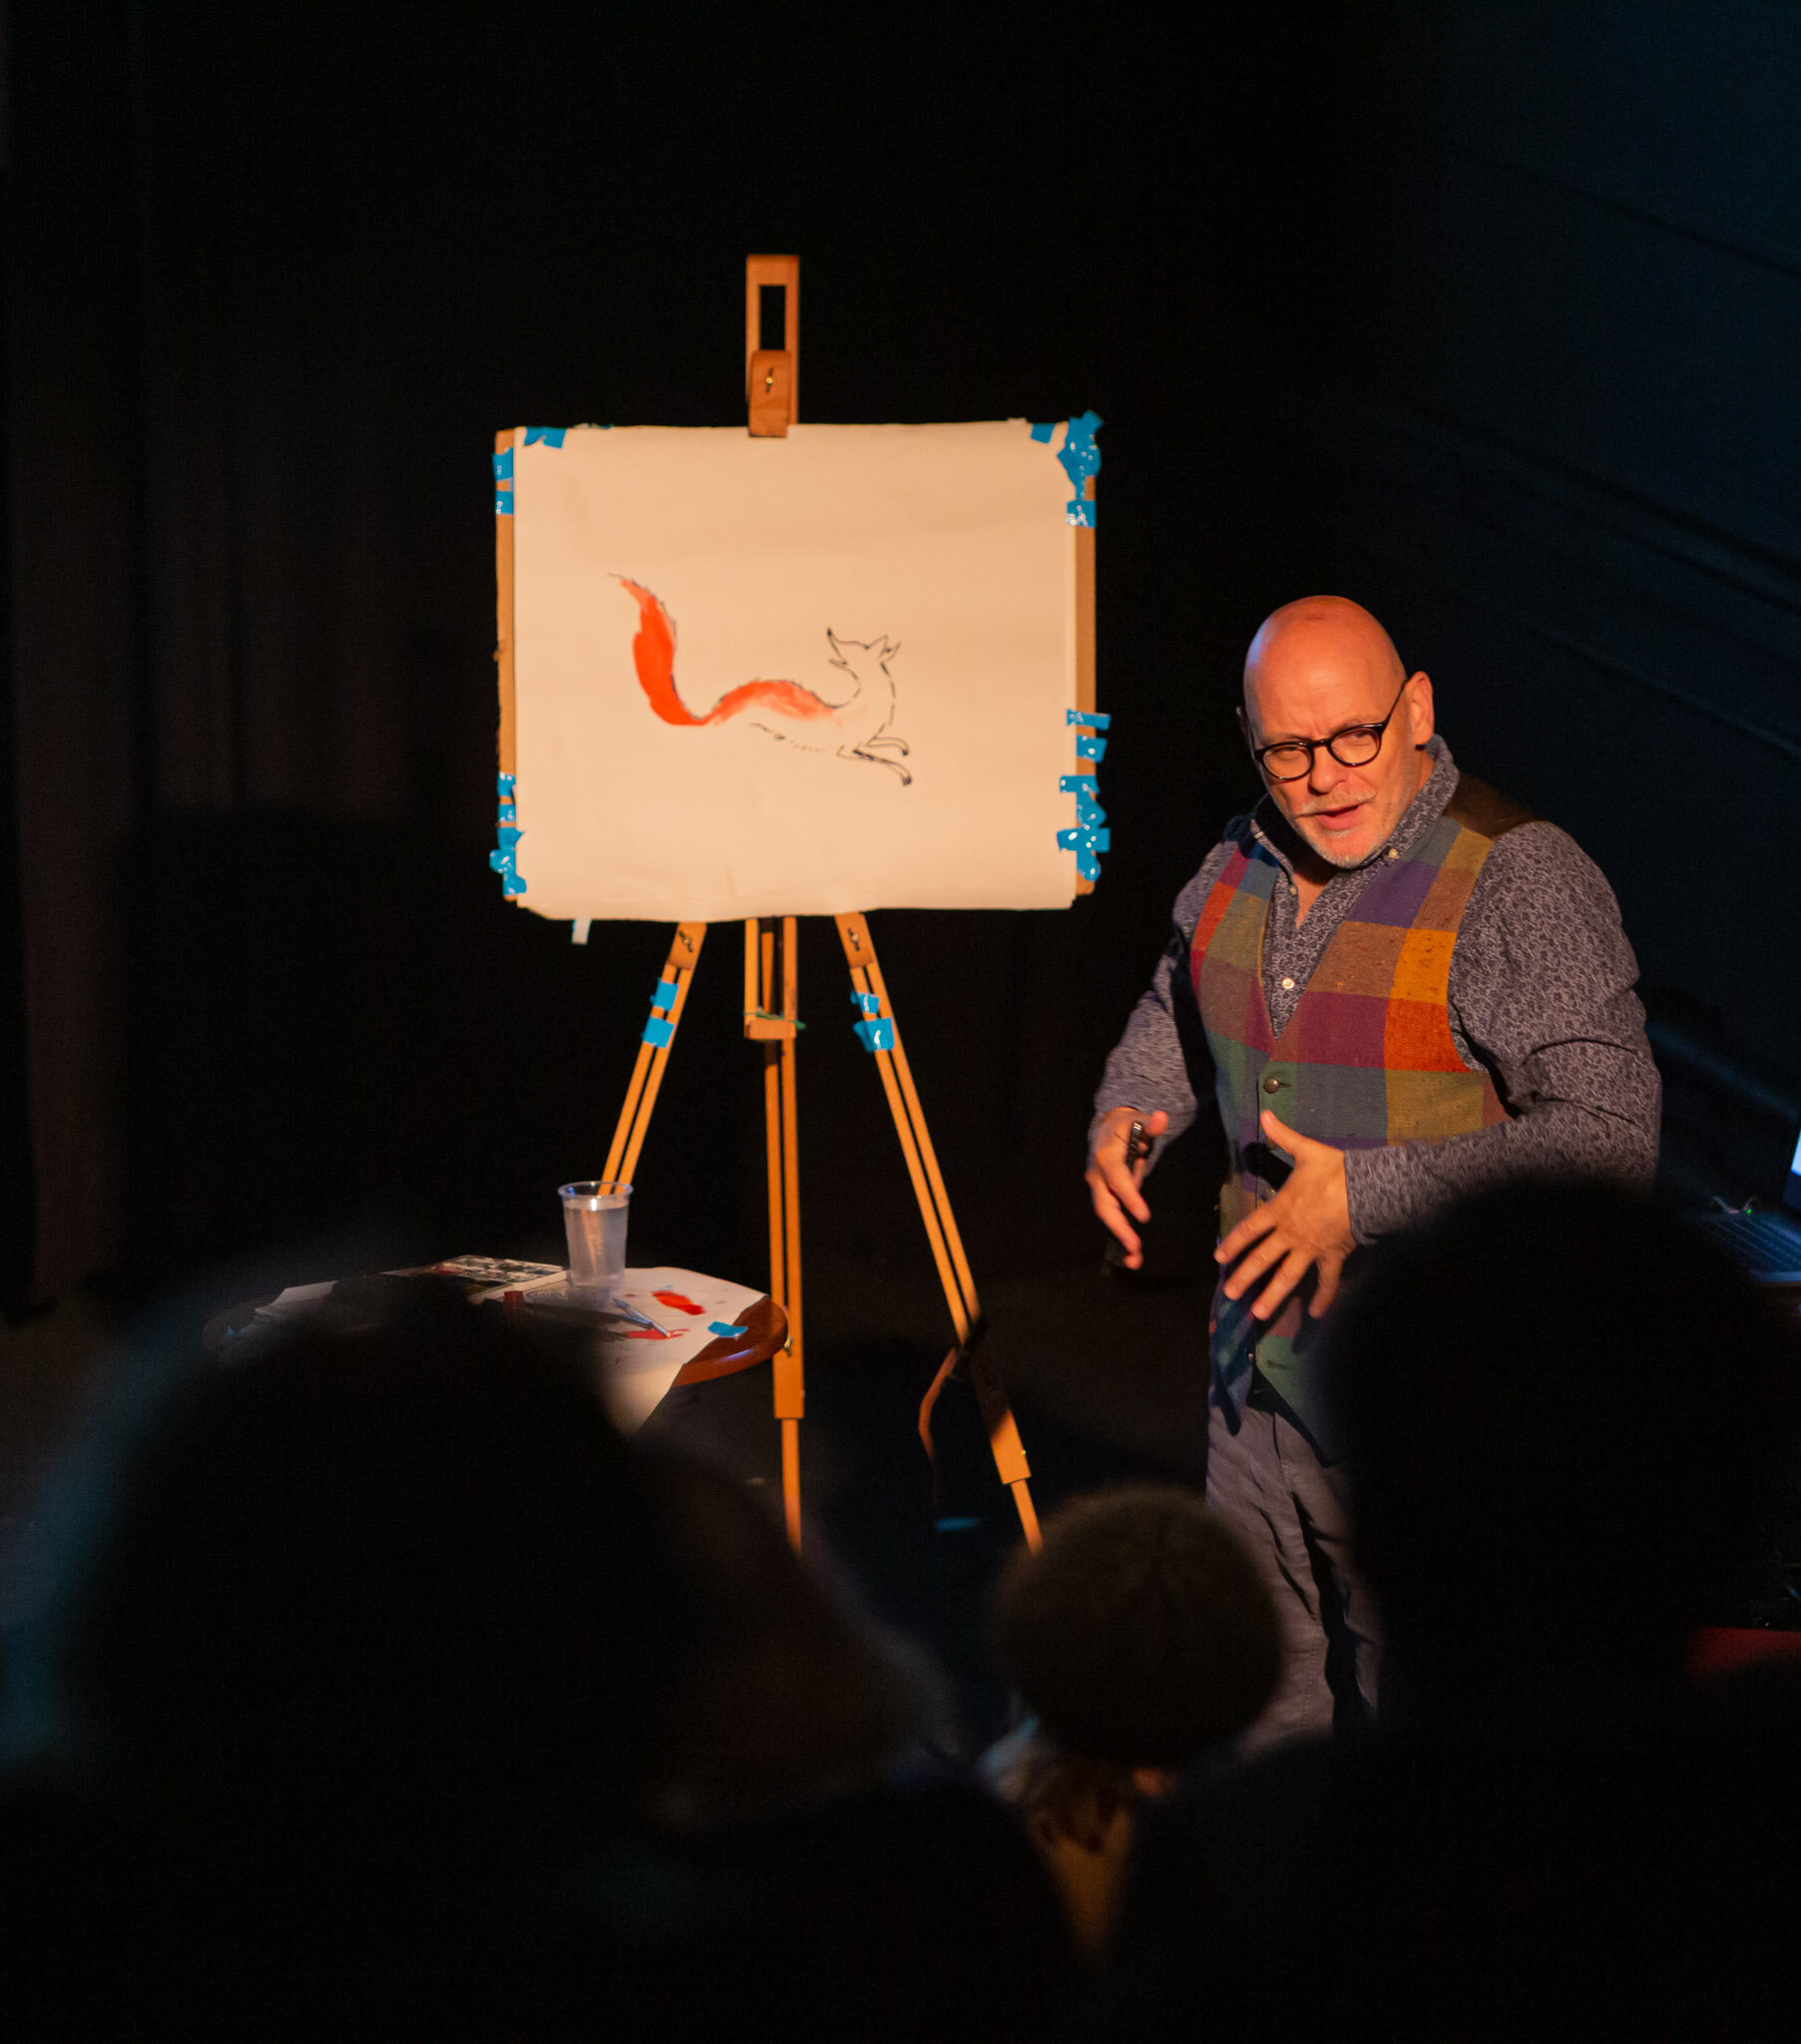 James Mayhew teaching how to draw Gaspard